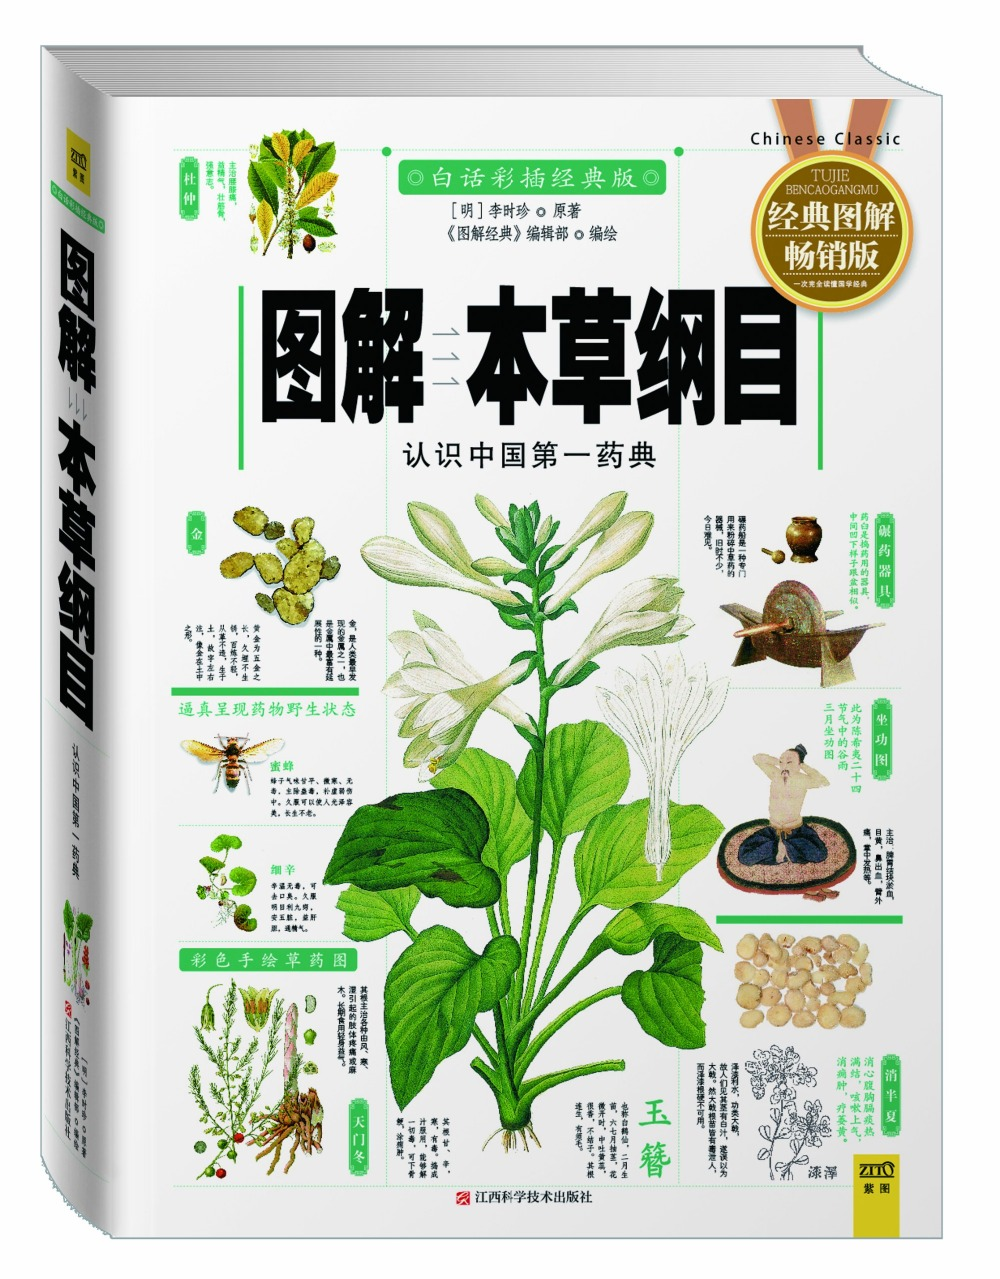 Compendium Of Materia Medica Chinese Traditional Herbal Medicine Book With Pictures Explained Learn Chinese Health Food Science